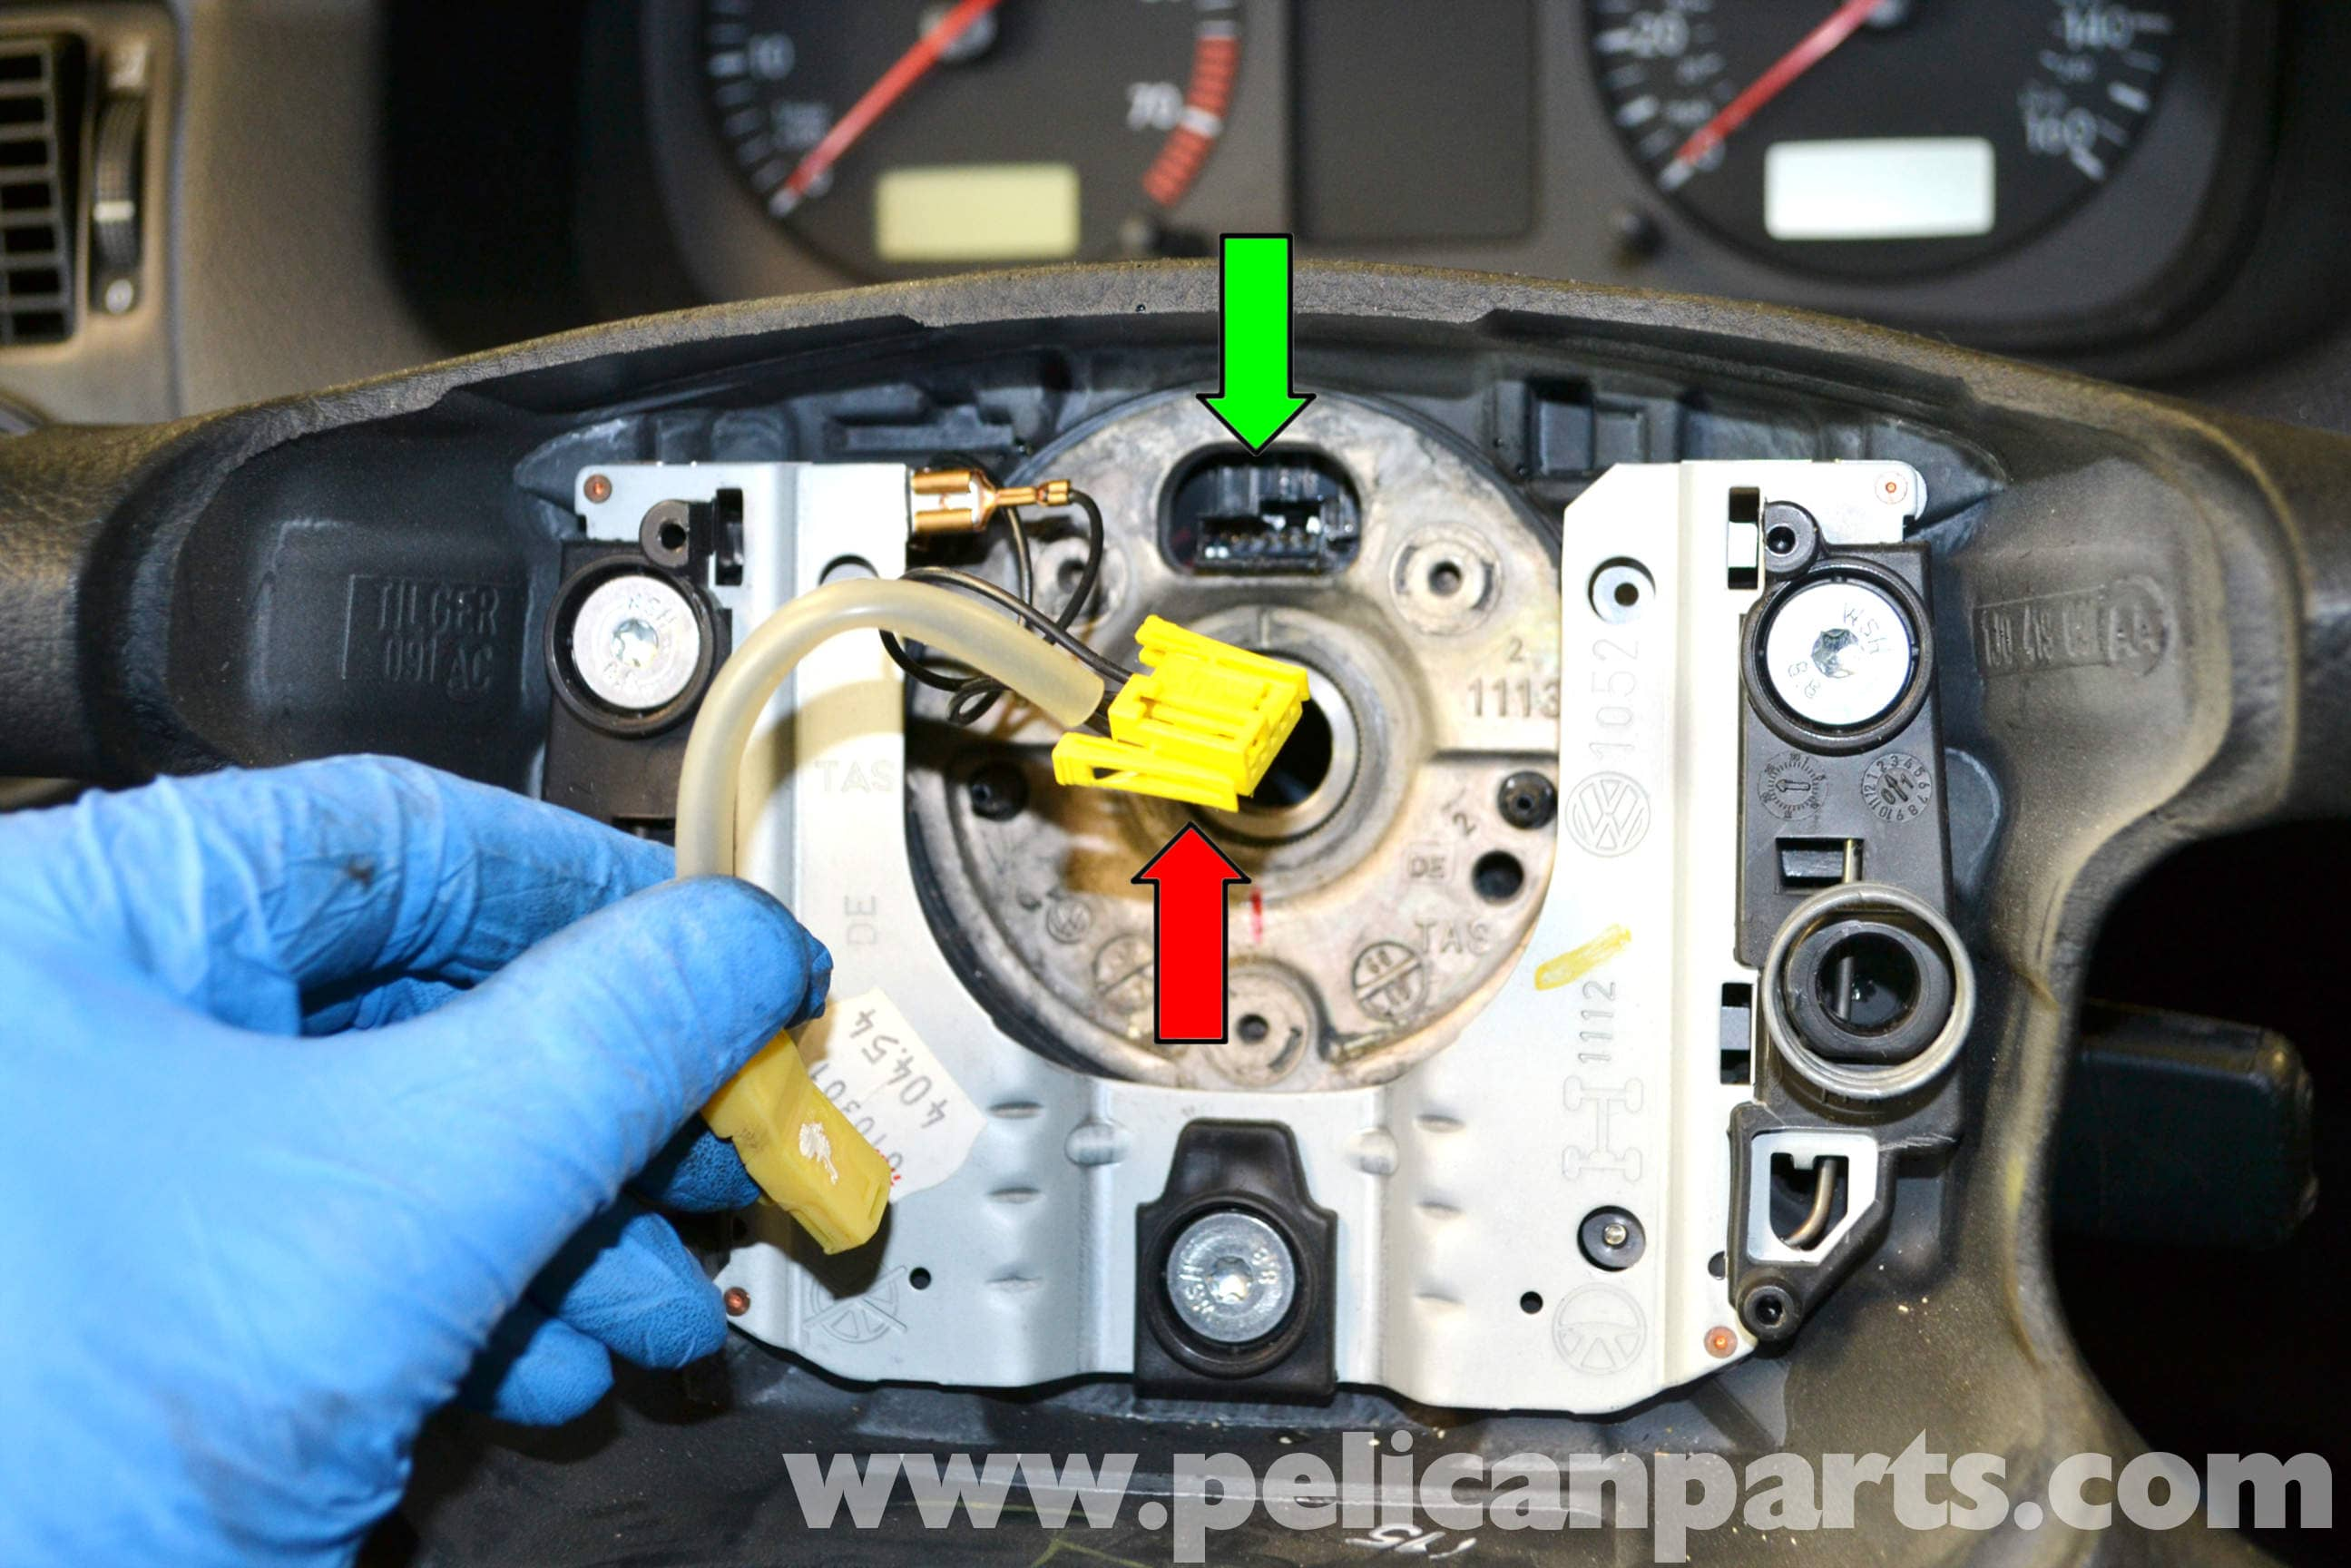 Vw Golf Mk4 Airbag Wiring Diagram : Volkswagen golf gti mk iv steering wheel and air bag